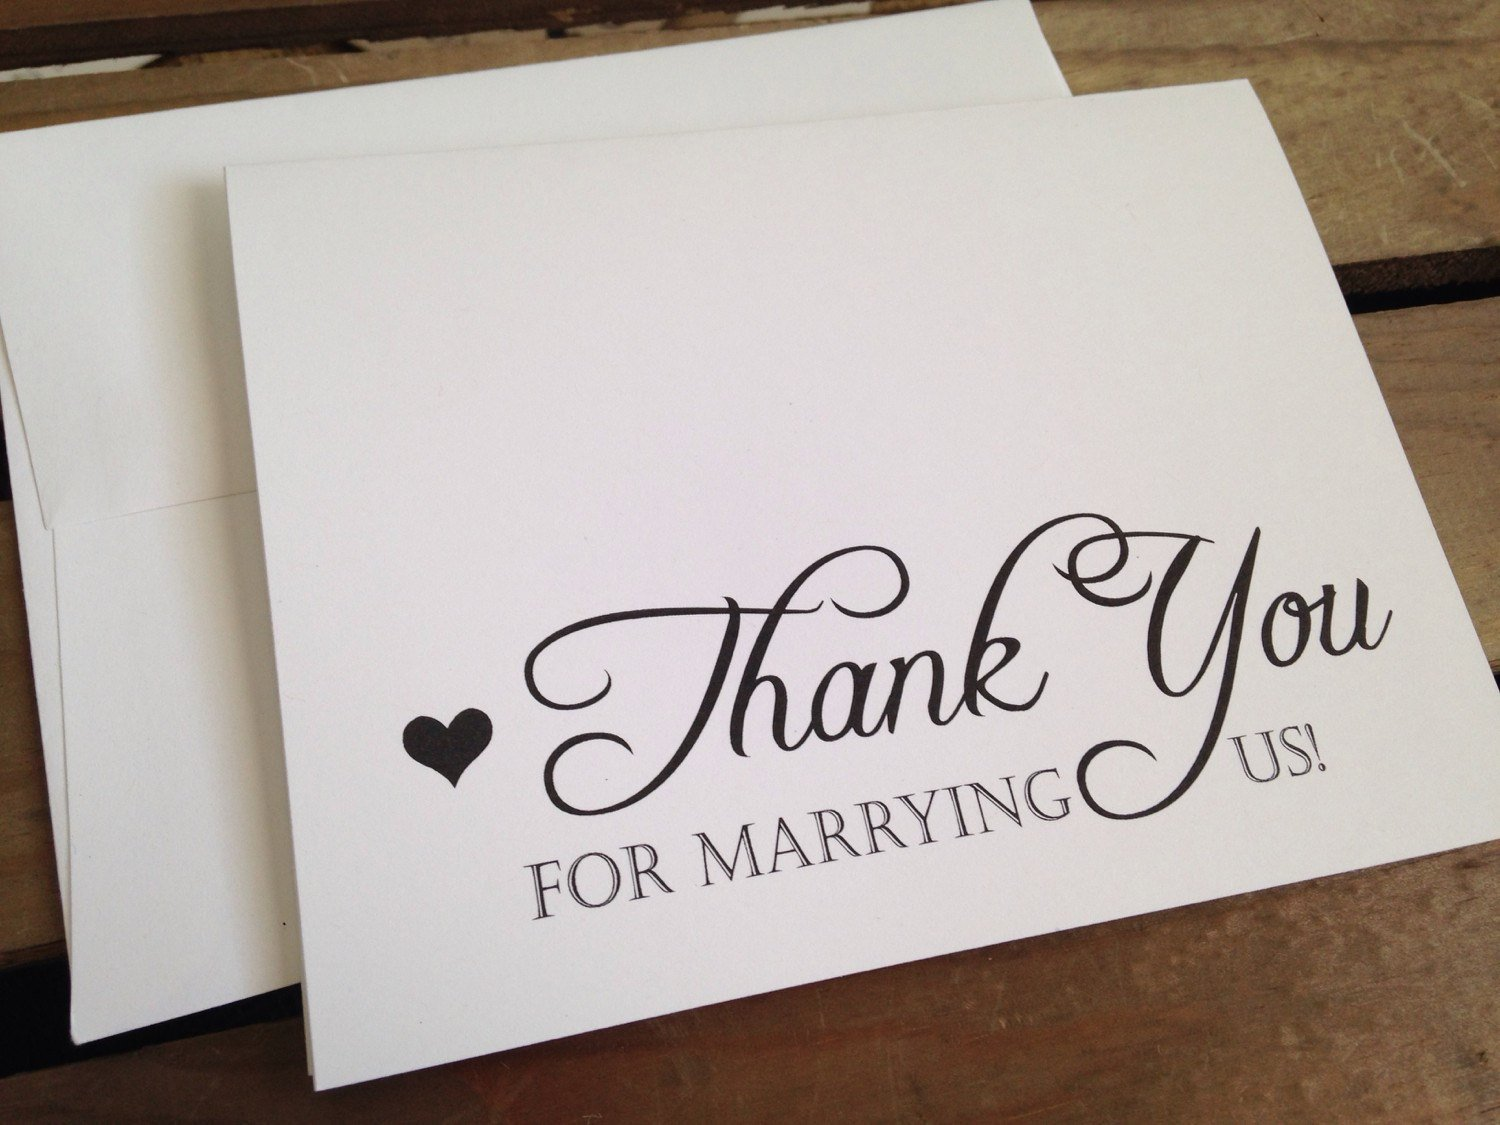 Thank You For Marrying Us To Officiant Wedding Day Note Card Eco White Rustic Recycled Eco Friendly